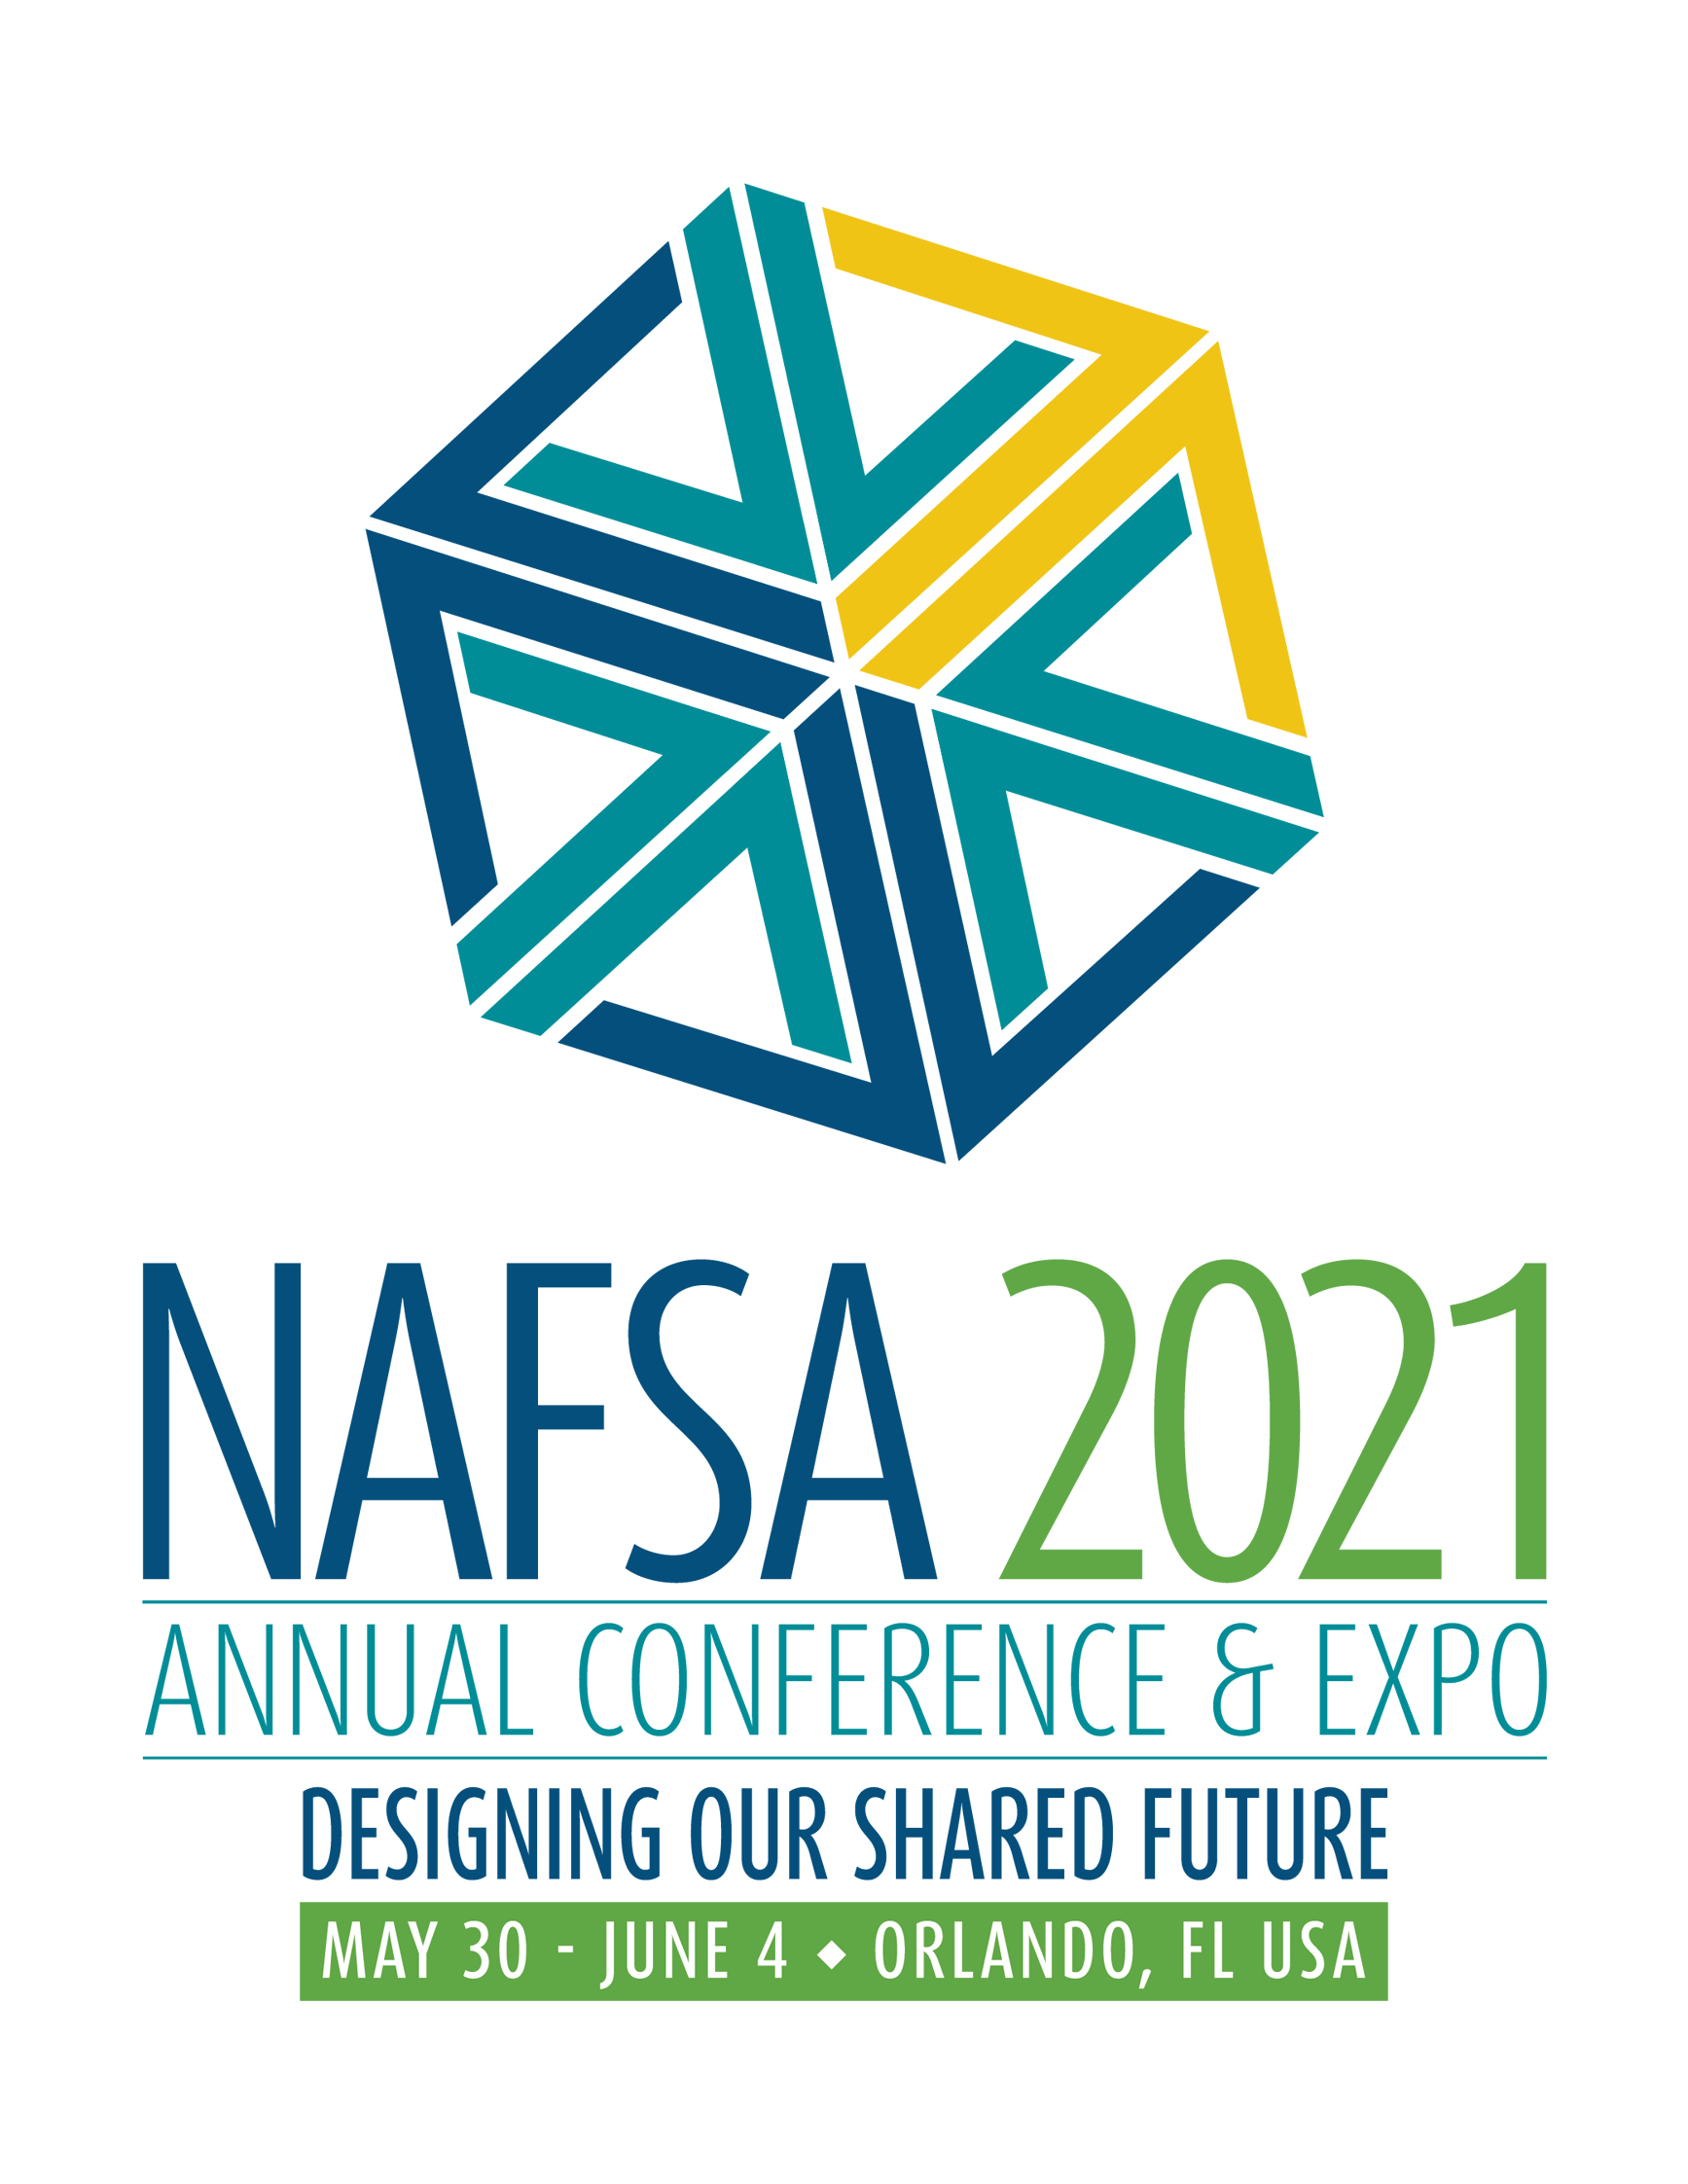 Nafsa 2021 Annual Conference And Expo | Nafsa For Orlando Convention Center Schedule 2021